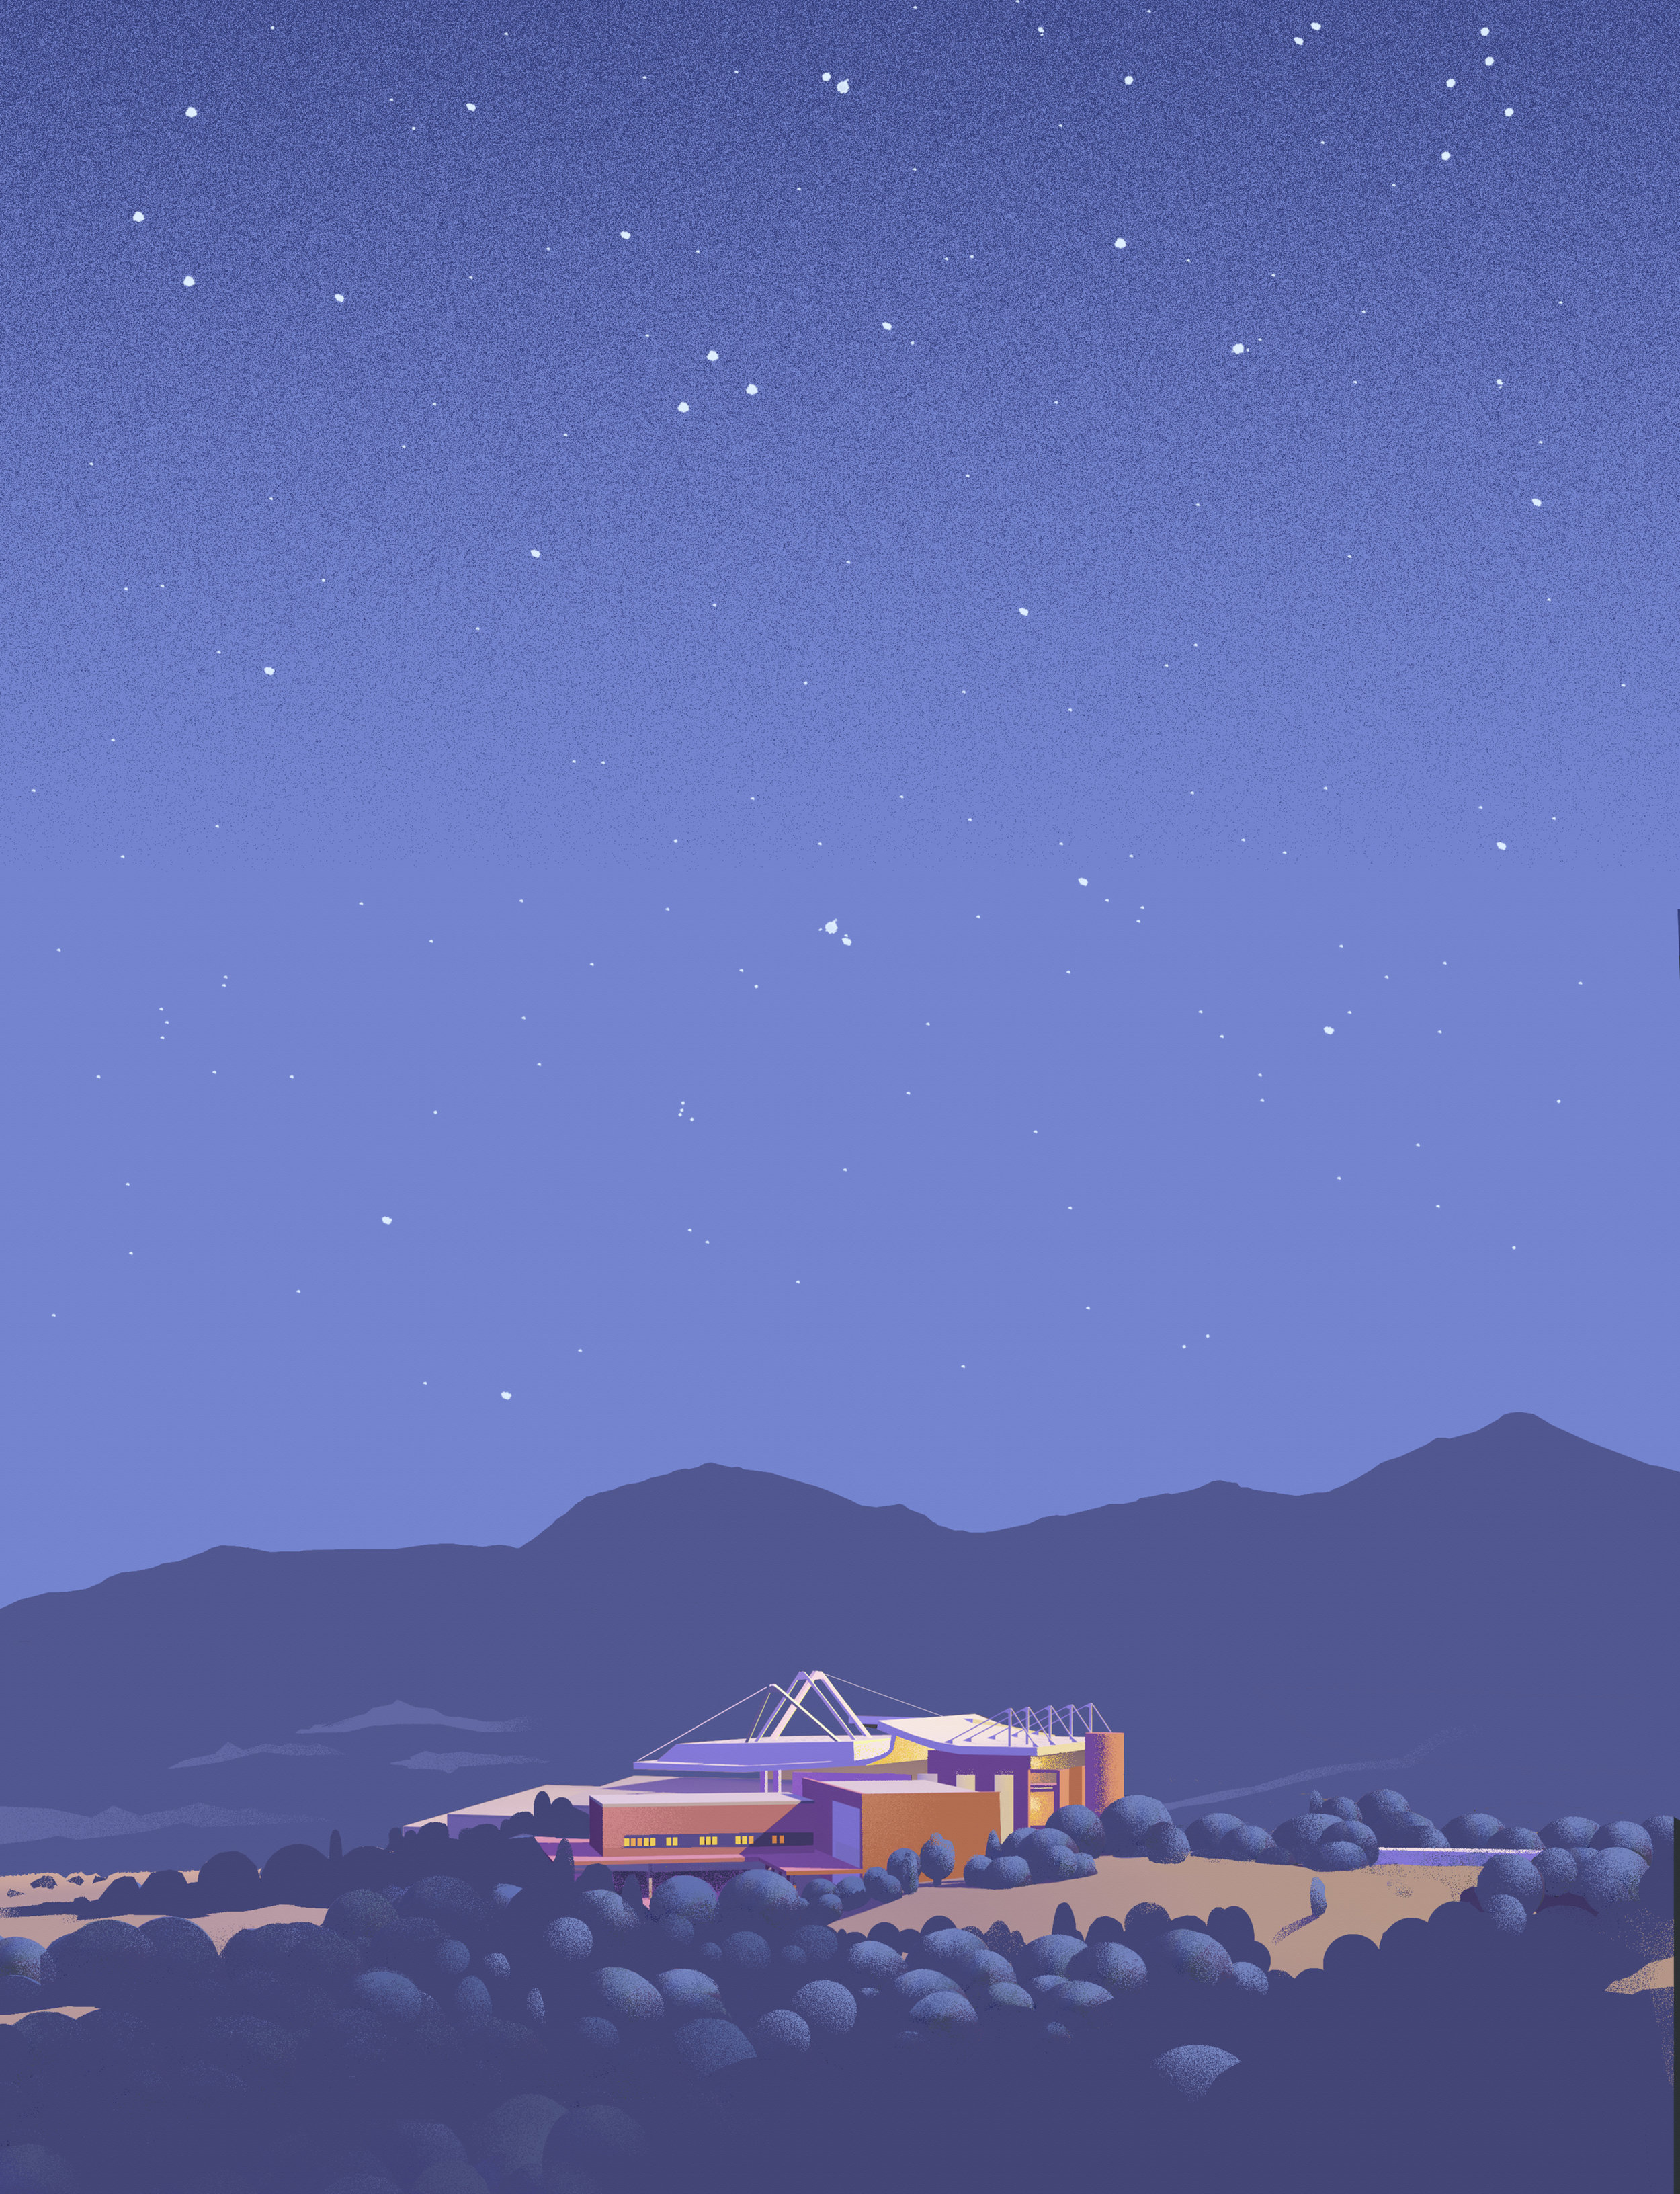 Farewell to Santa Fe Opera this season. Thanks for a great experience. (Santa Fe Opera illustration. Image by Stuart Mcreath; courtesy of Santa Fe Opera.)